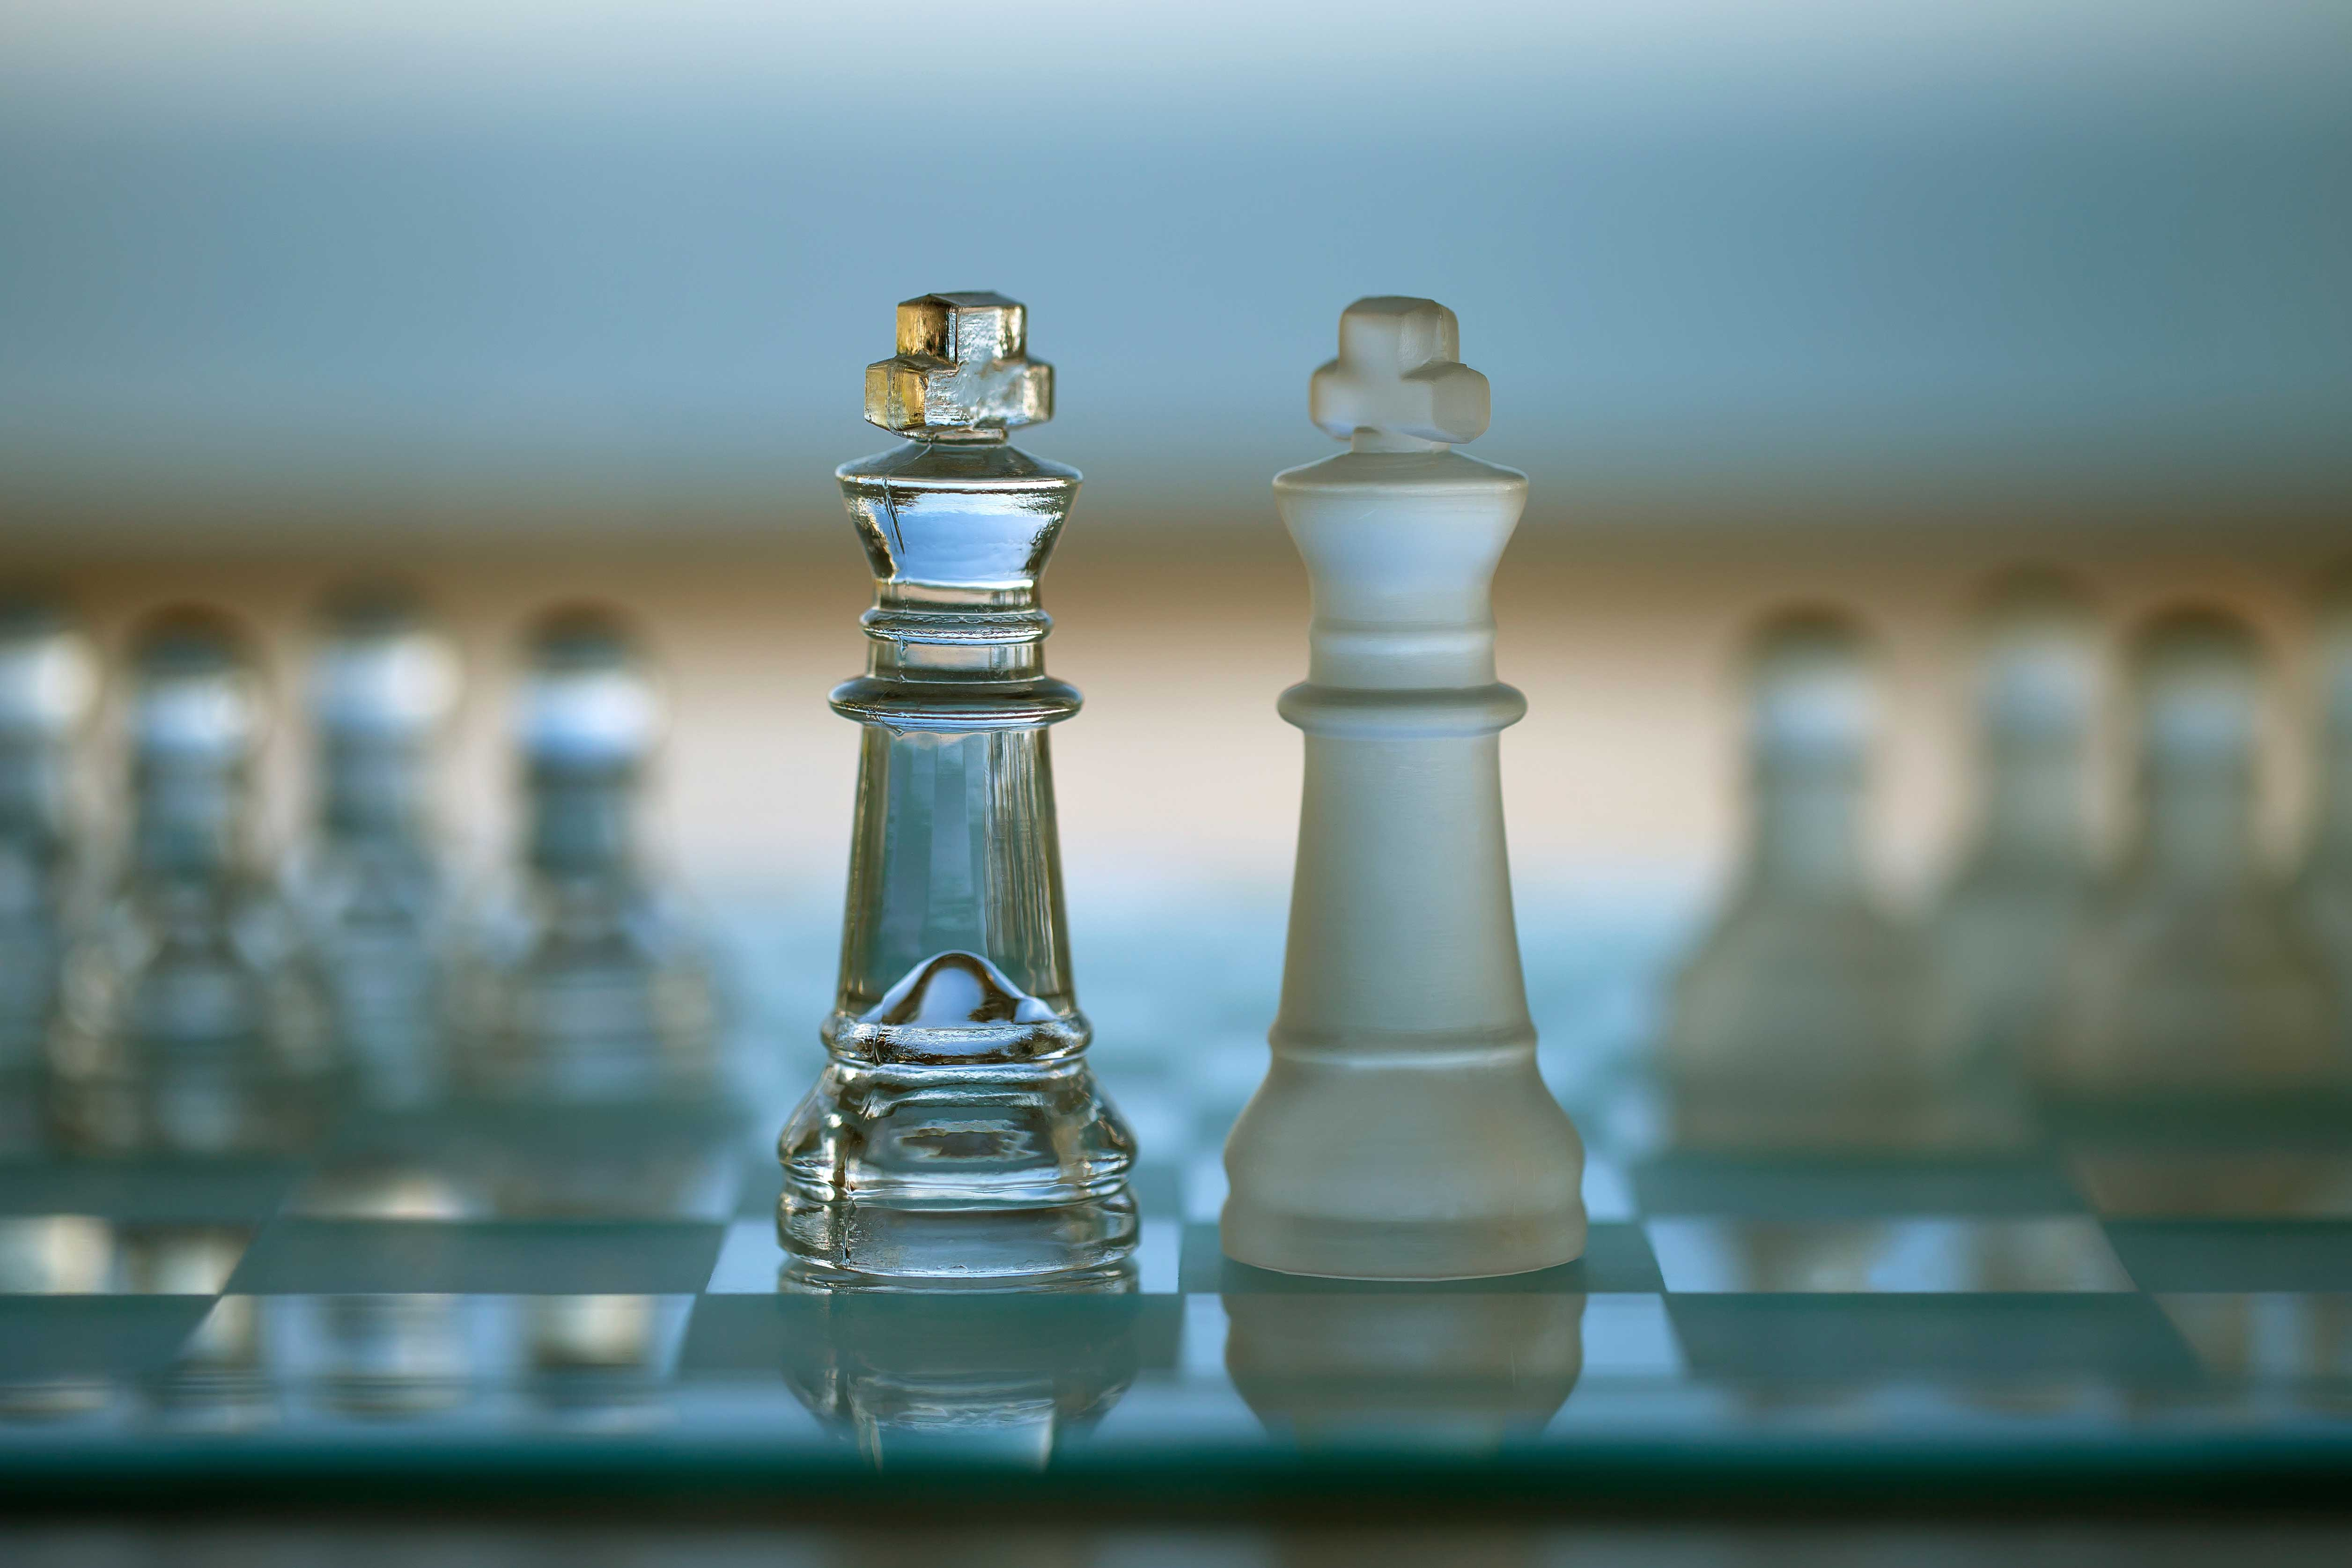 King-Chess-Pieces-as-Business-Concept